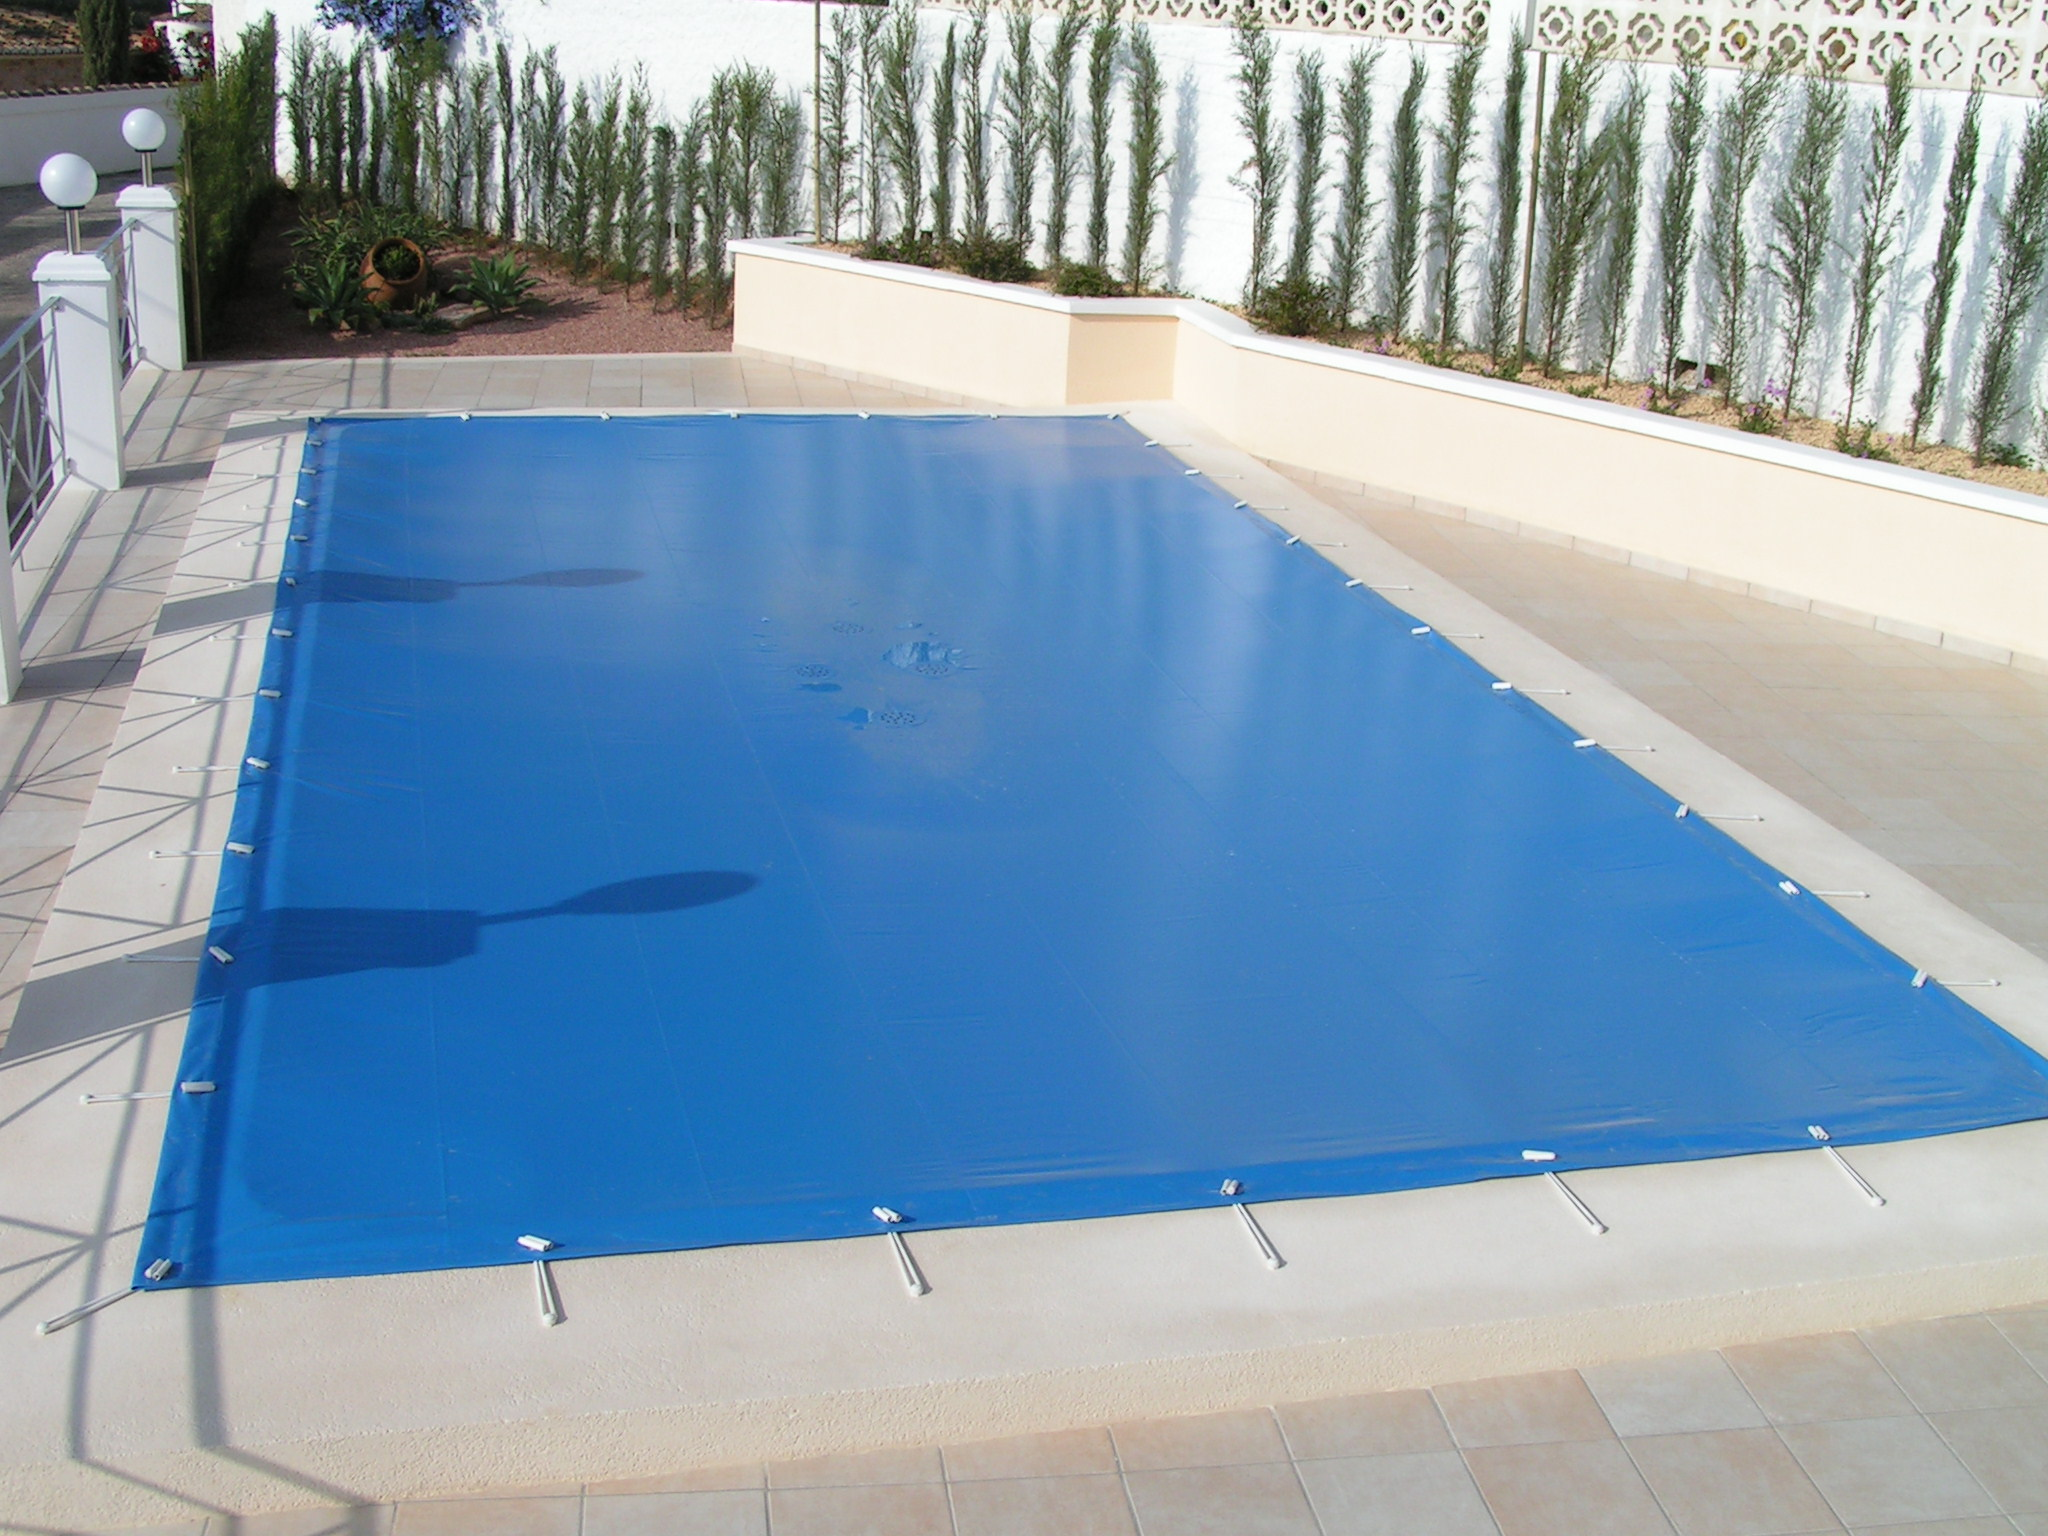 5 benefits of a pool cover se pool supply chemical inc - Lona cubre piscinas ...